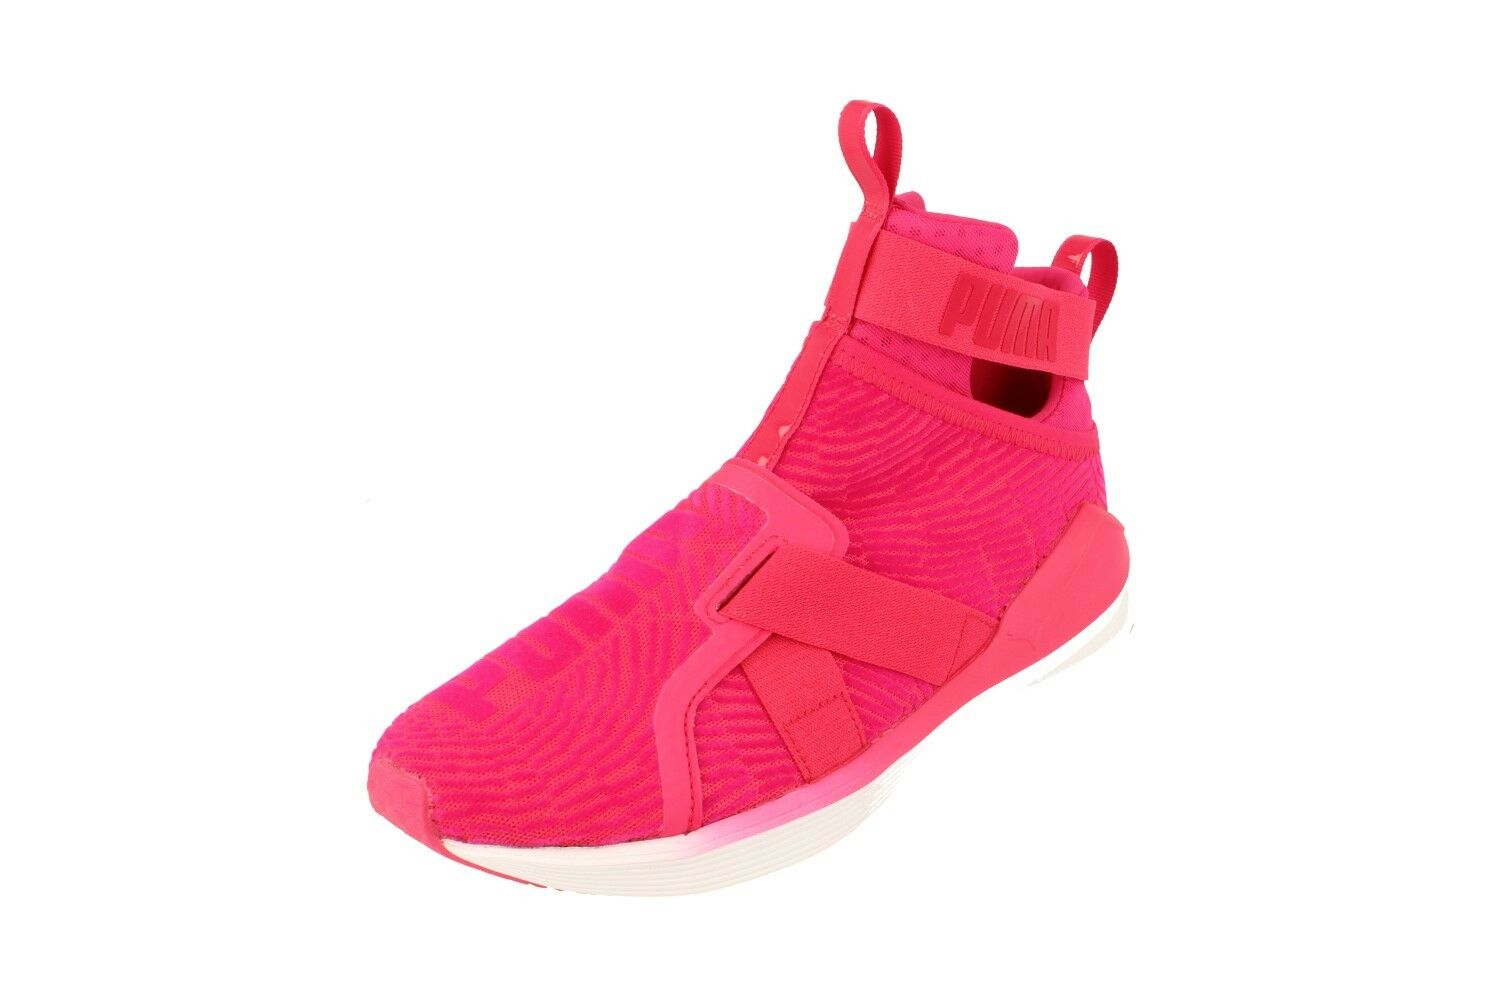 Zapatos promocionales para hombres y mujeres Puma Fierce Strap Flocking Womens Hi Top Trainers 189767 Sneakers Shoes 03